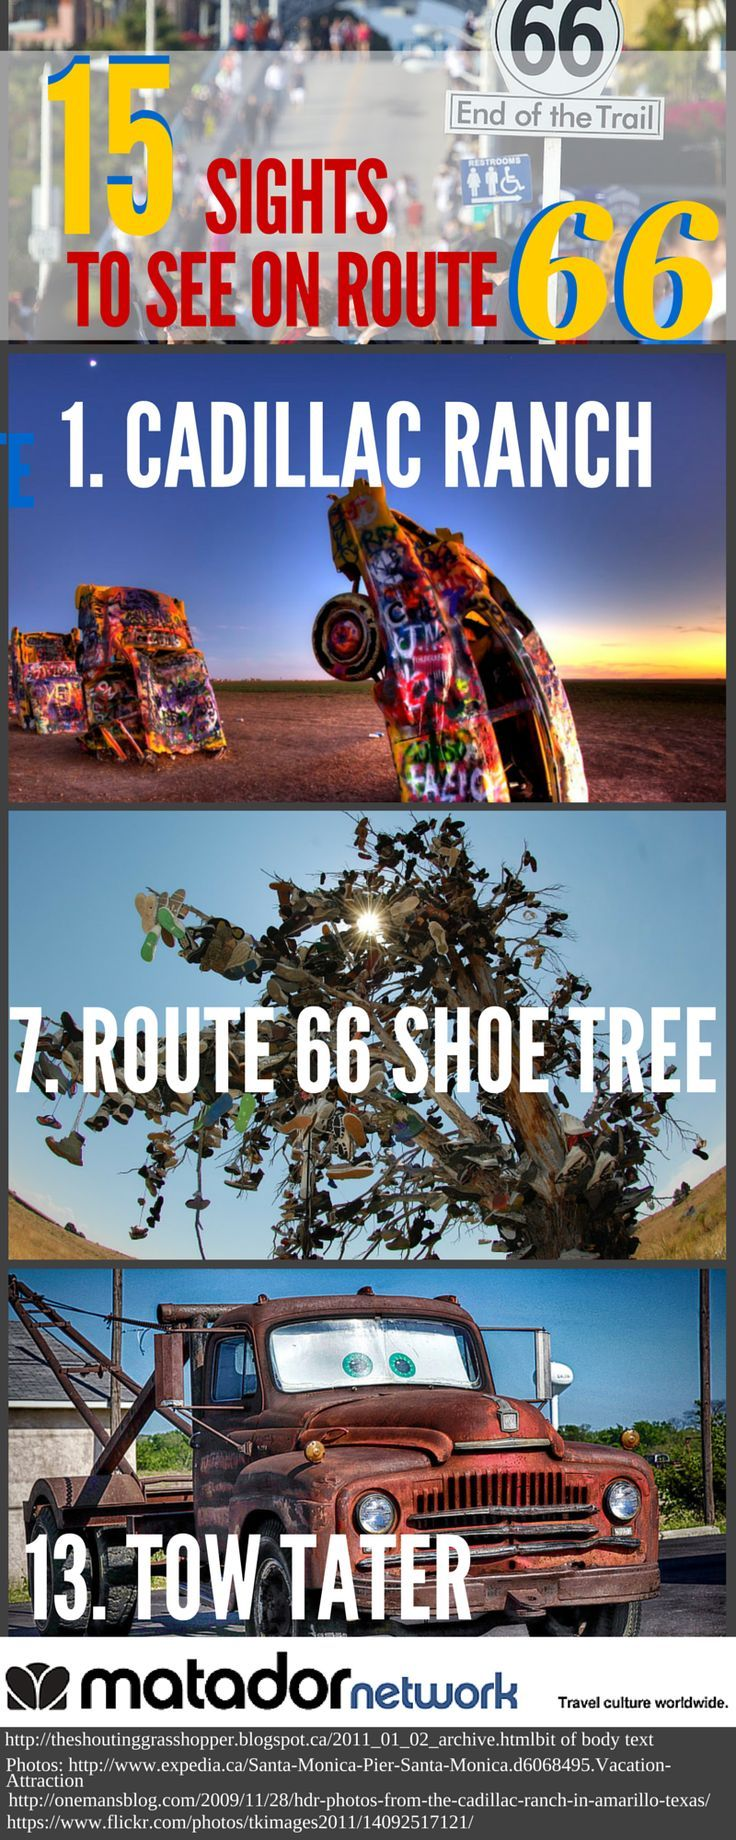 15 Only in America Sights You'll See On Route 66 Road Trip. Add some of these to your bucket list if you're looking for some true adventure. And yes you will need a special map for Route 66 since some of the roads are no longer there. Enjoy your travel destinations in the U.S.!